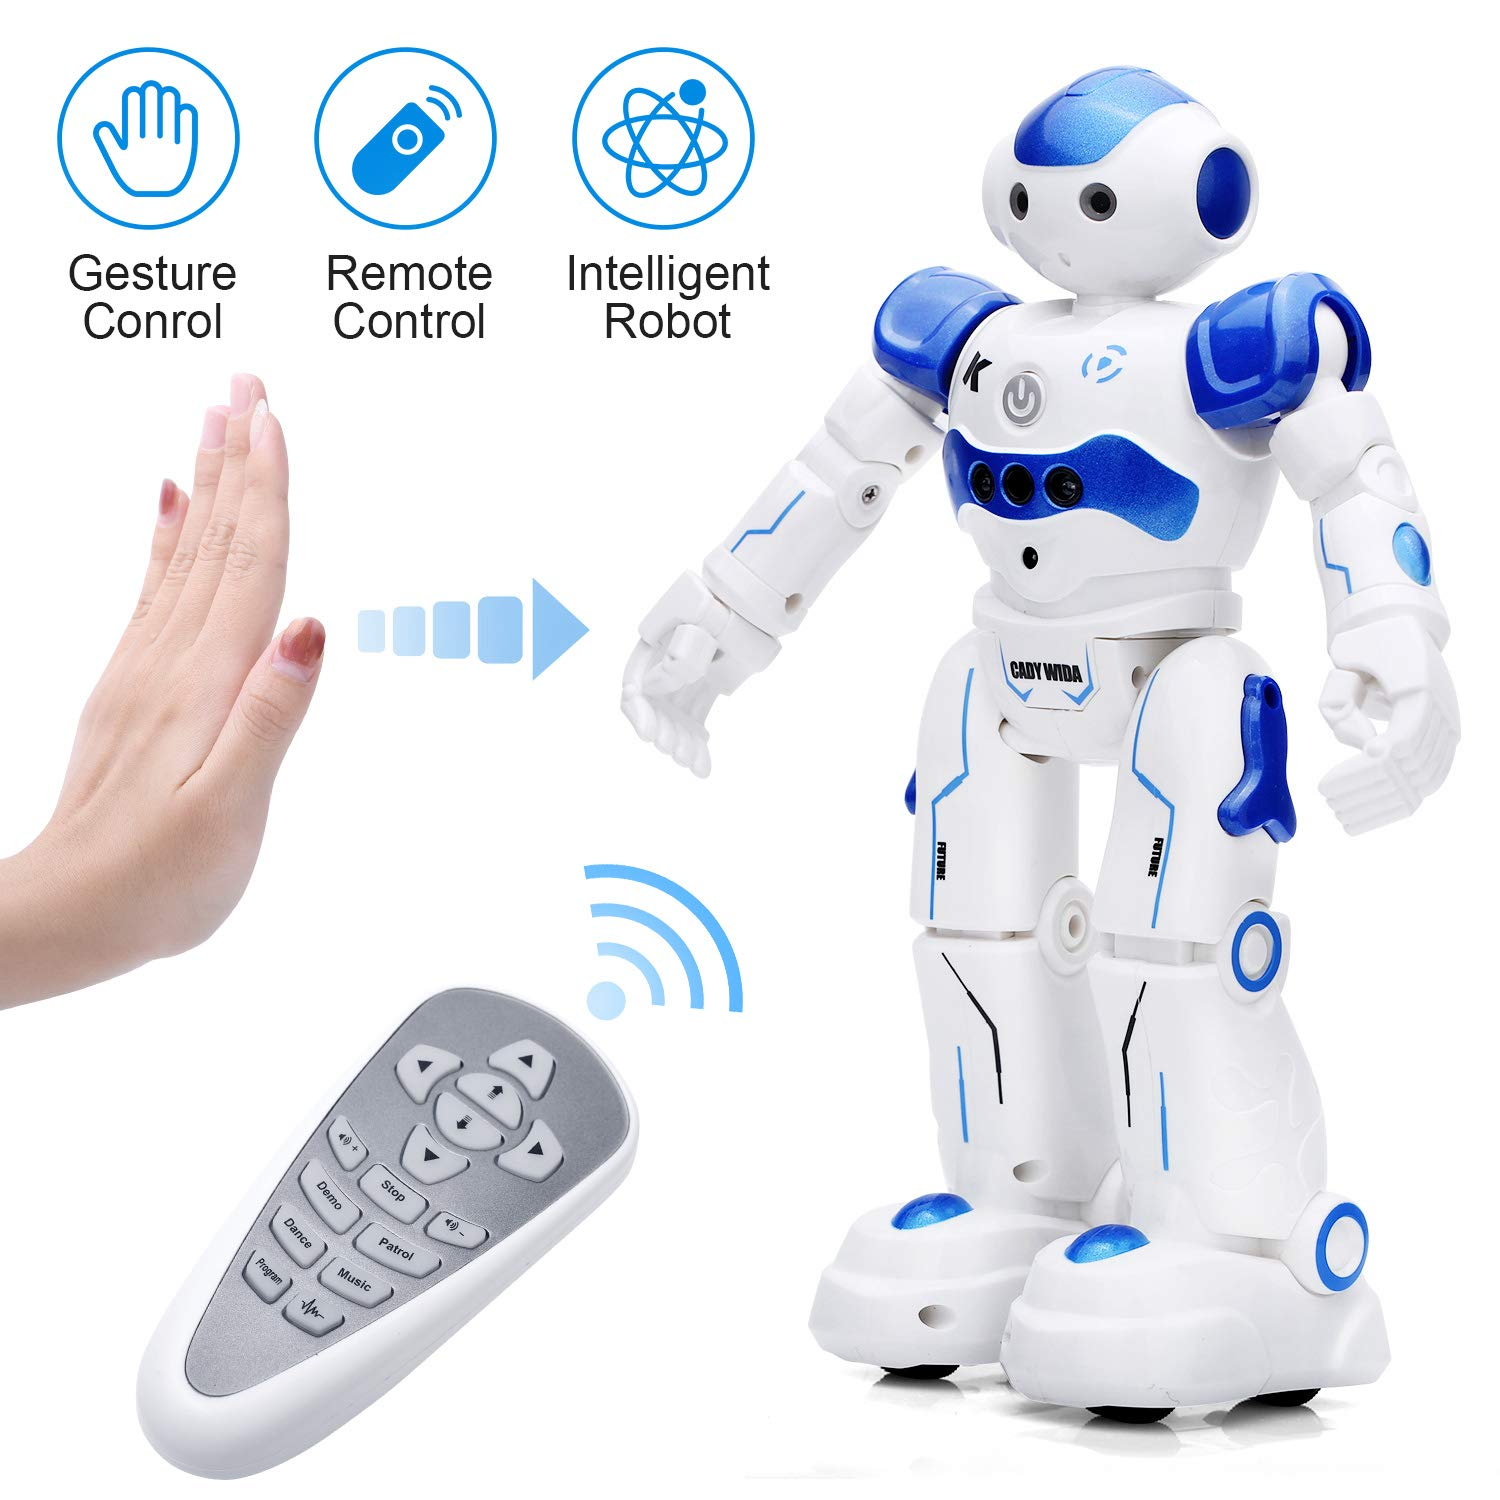 KINGSDRAGON Robot Toys RC Robot for Kids Rechargeable Intelligent Programmable Robot with Infrared Controller,Remote Control Robots Gesture Sensing Robot,Interactive Walking Singing Dancing by KINGSDRAGON (Image #1)